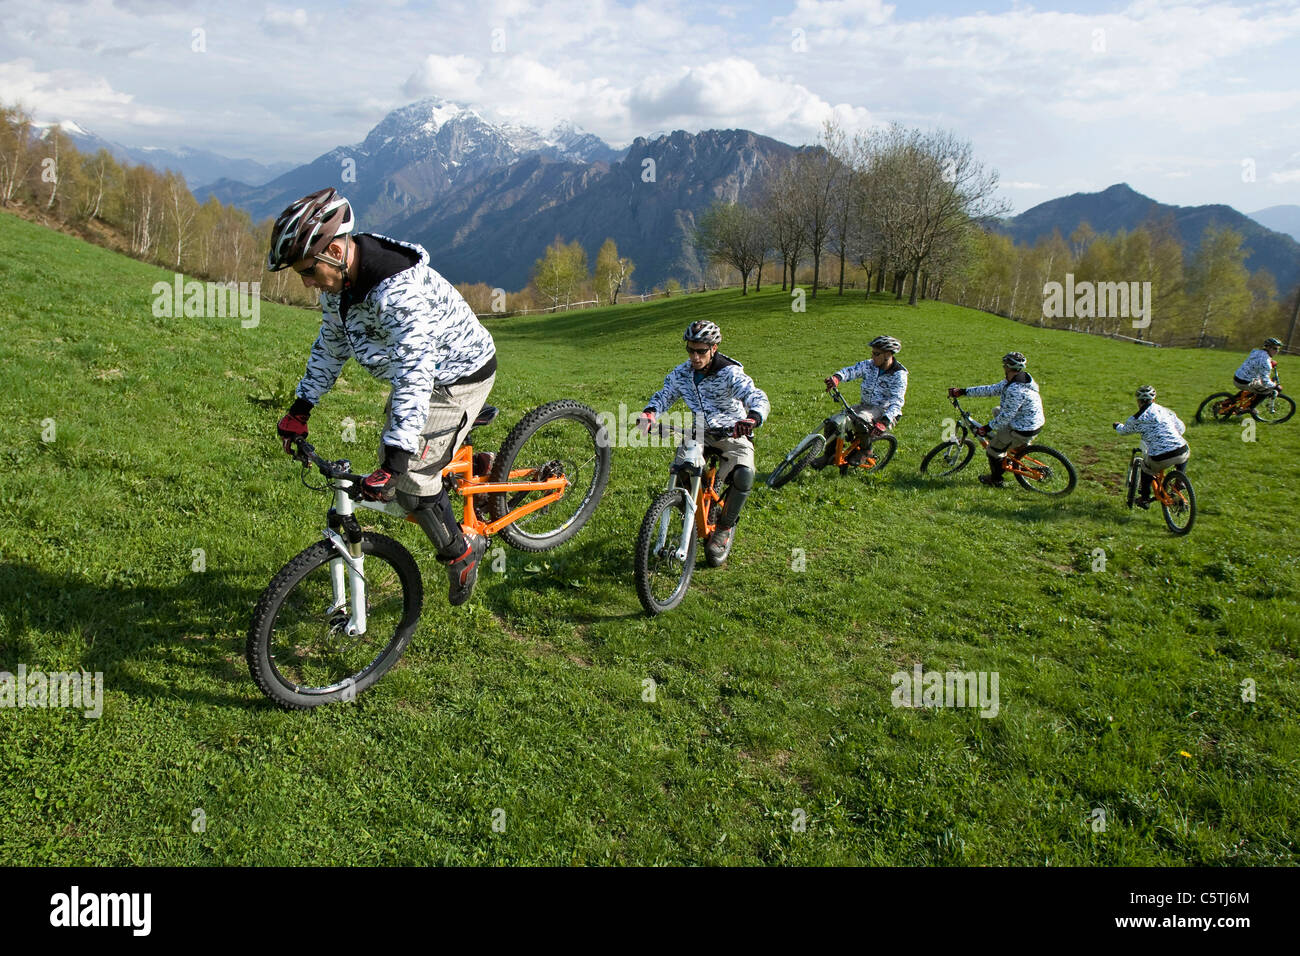 Italy, Lake Como, Group of mountain bikers riding across meadow - Stock Image